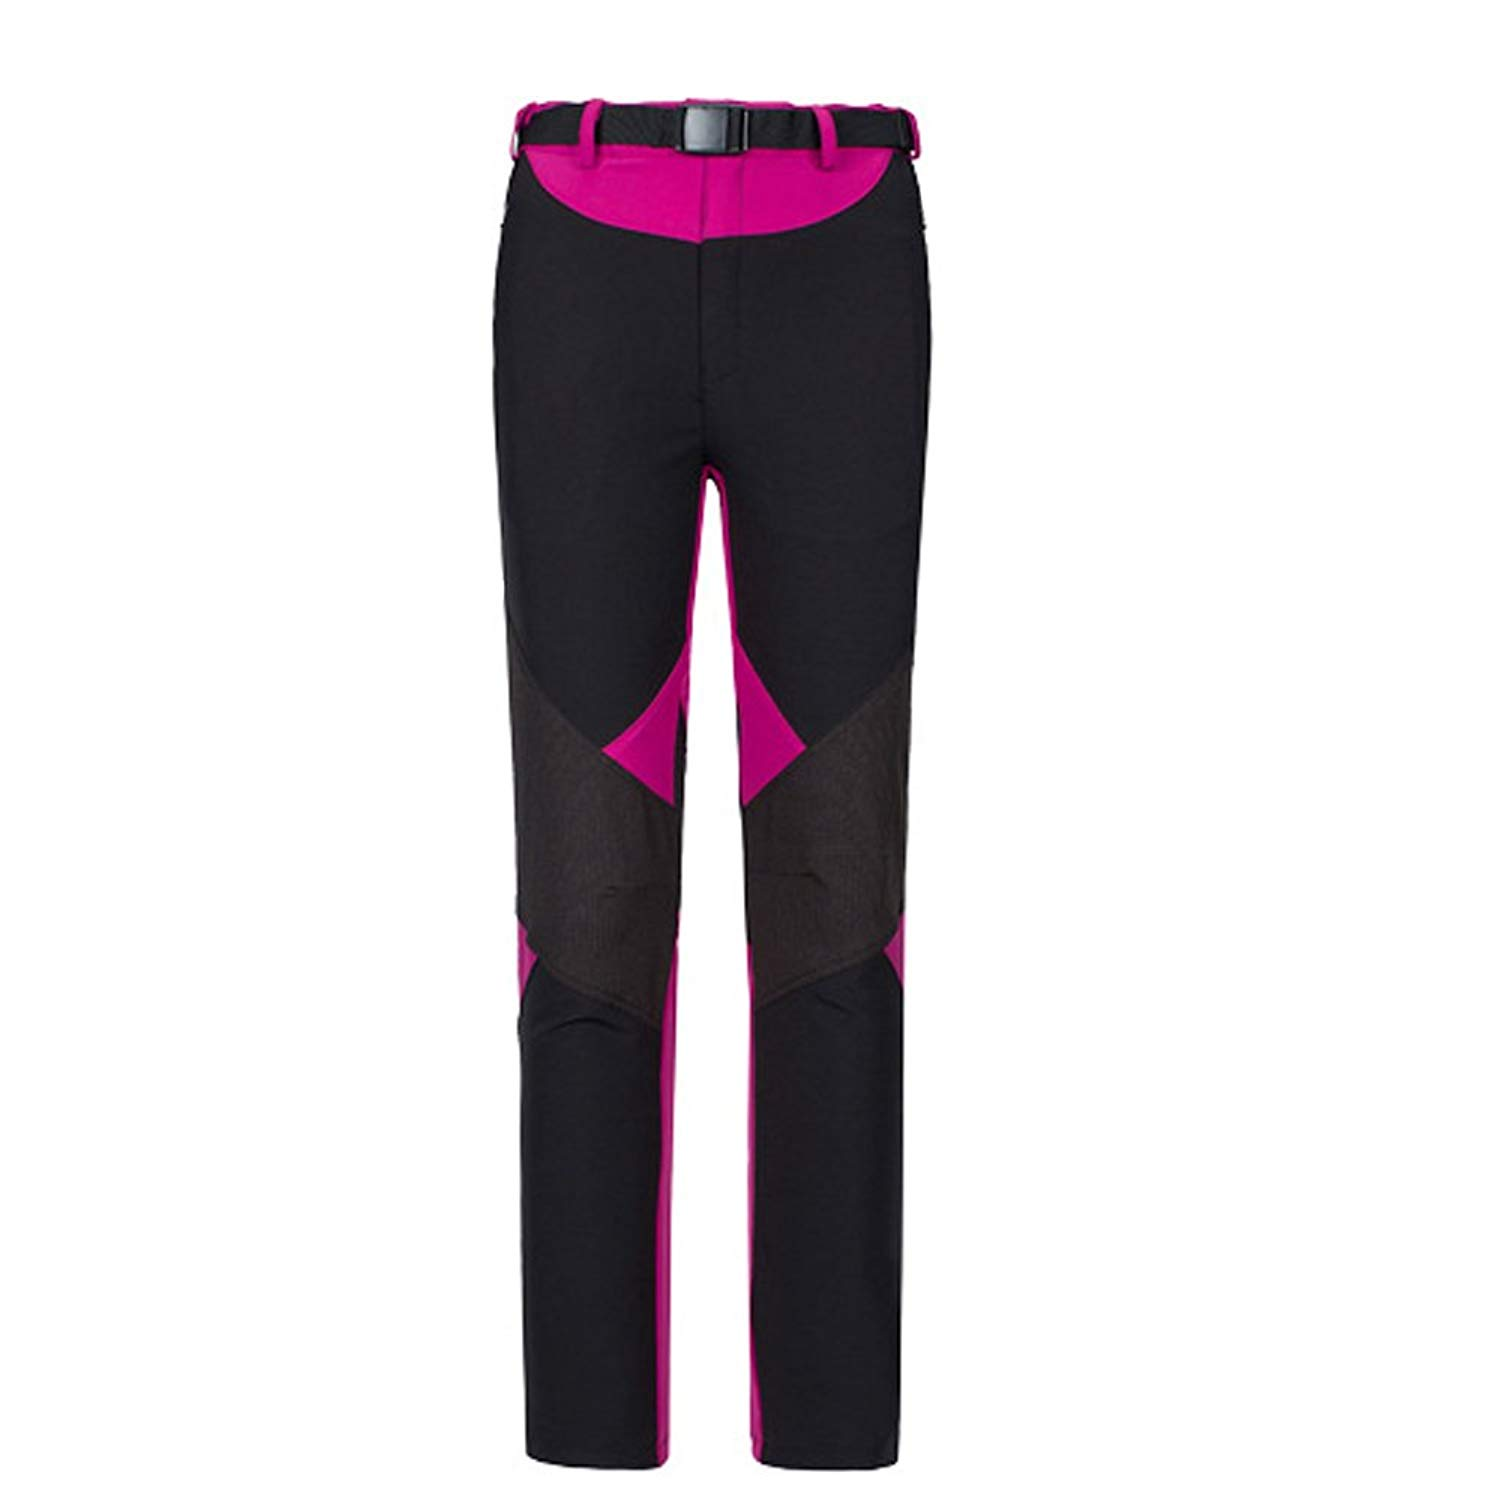 K-mover Women's Outdoor Sportwear Quick Dry Lightweight Hiking Soft Shell Pants